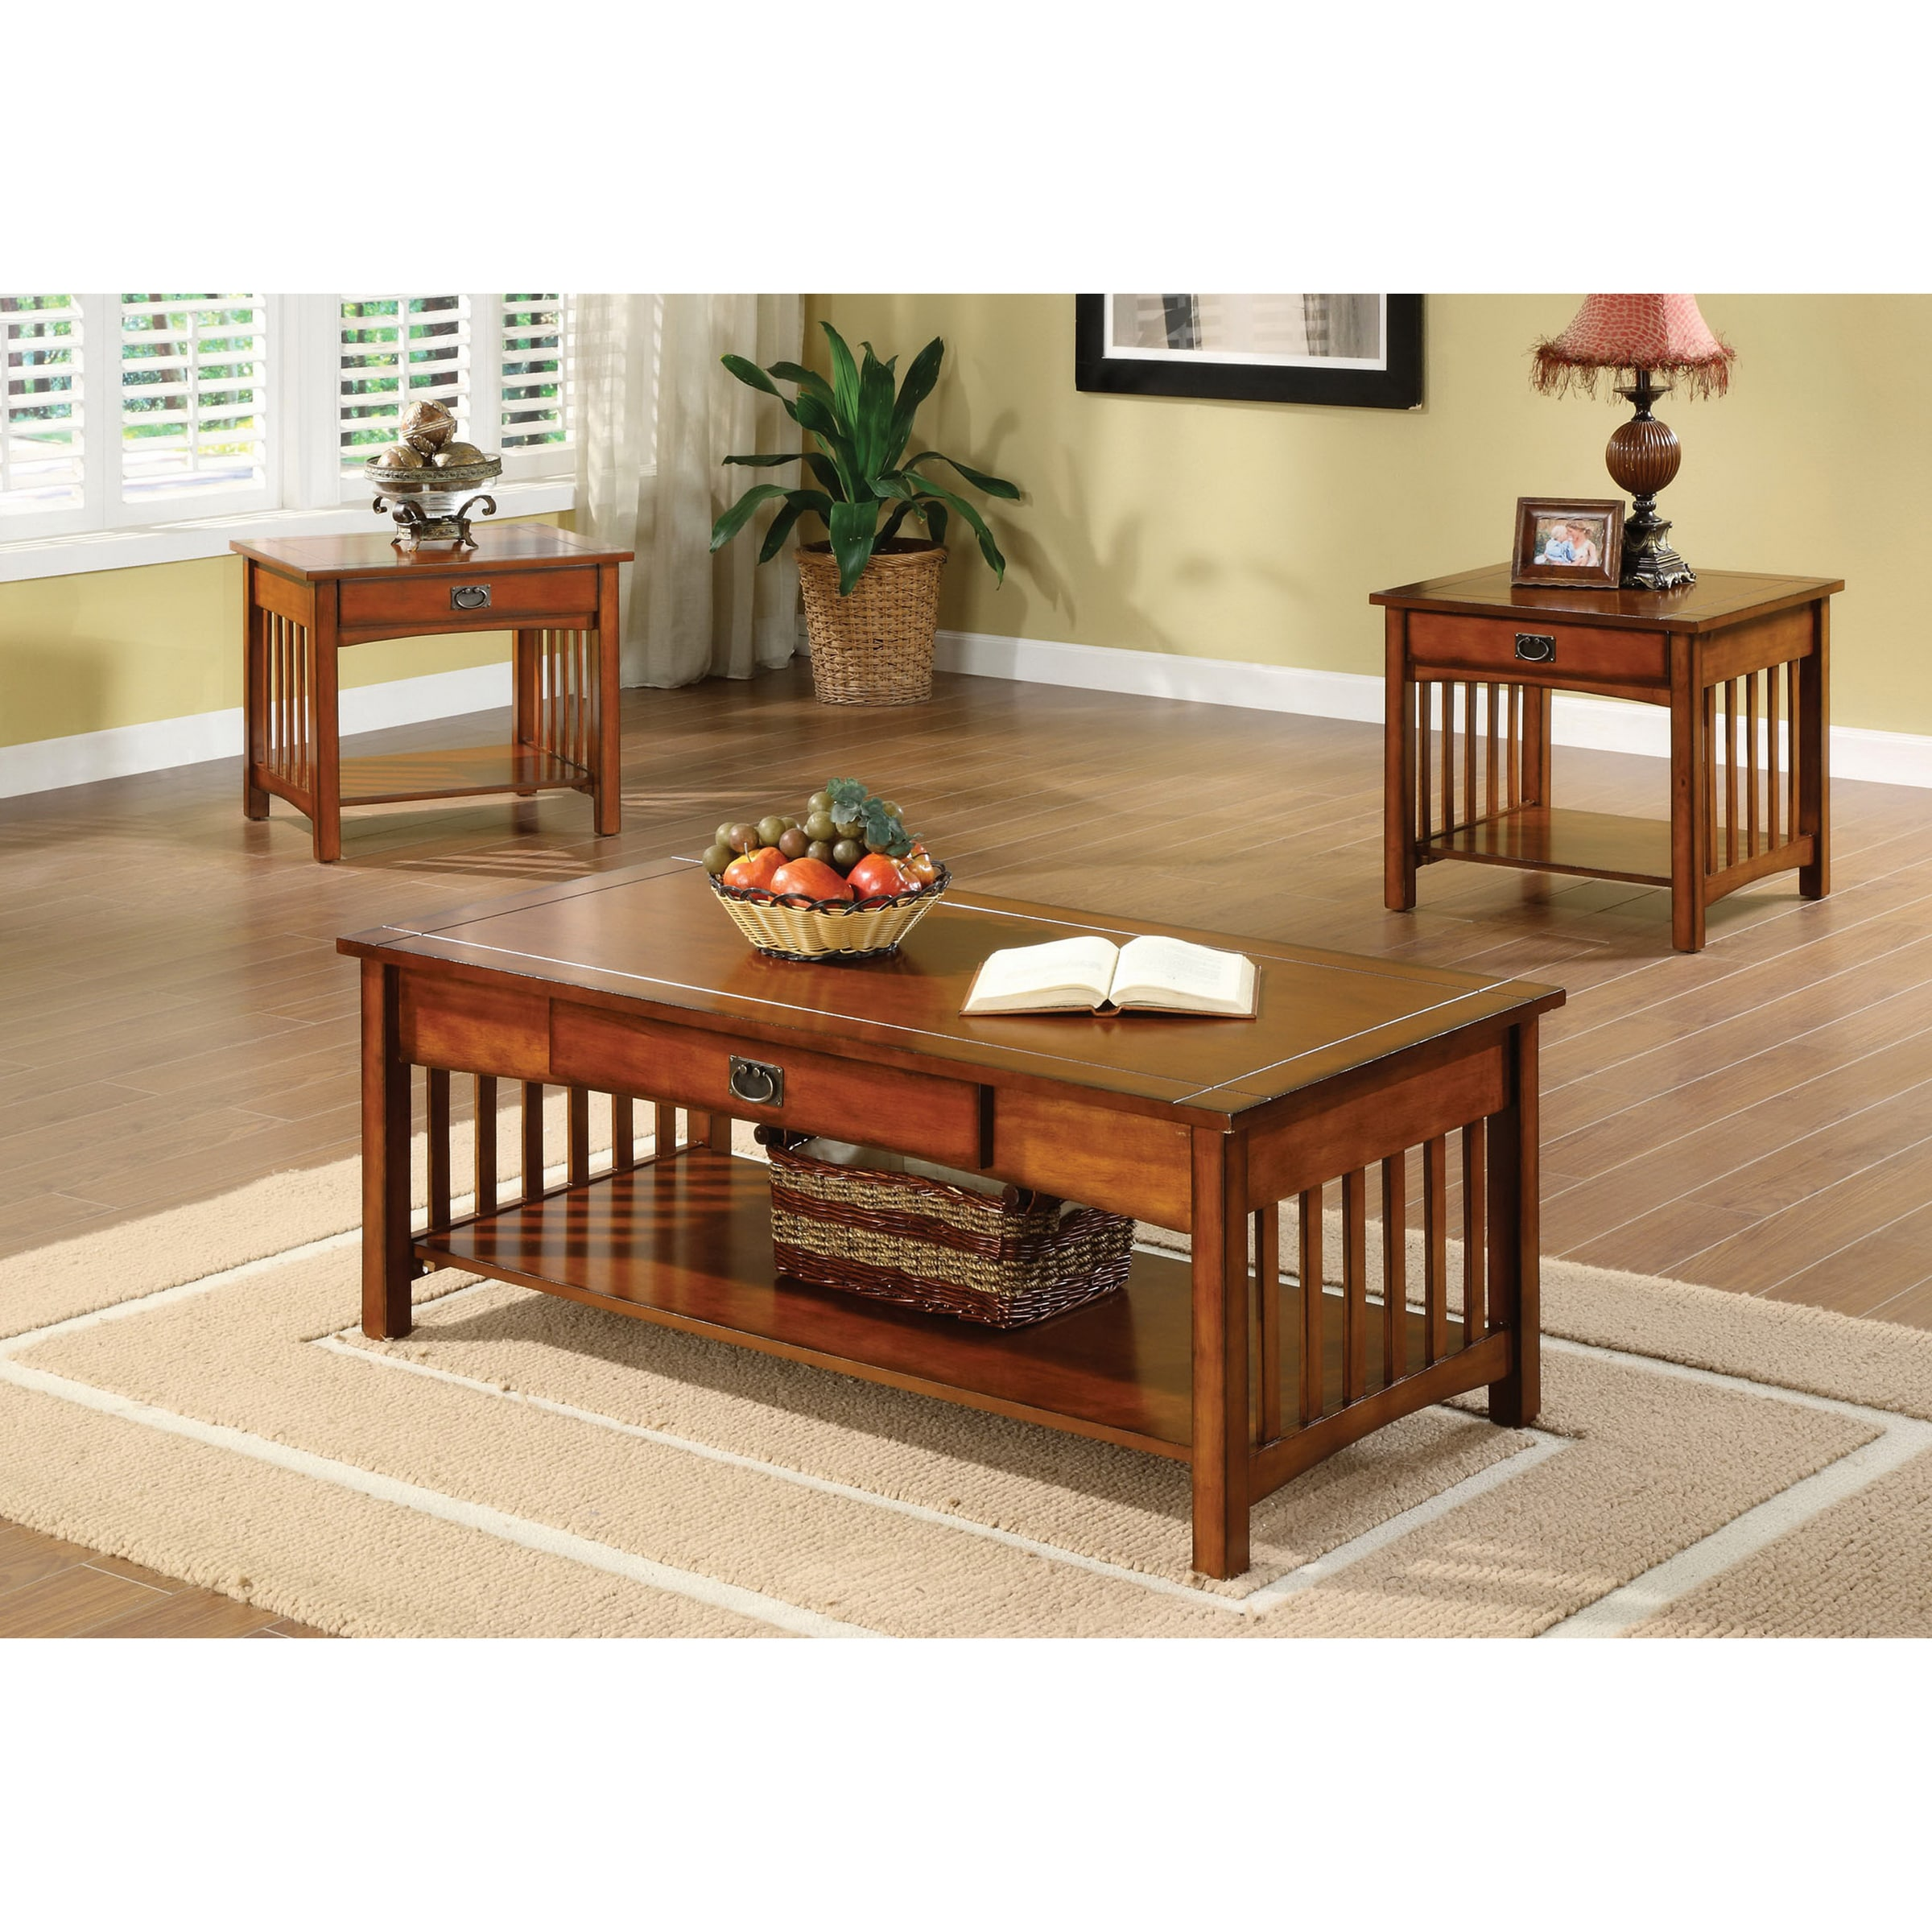 Furniture Of America Nash Mission Oak 3 Piece Accent Tables Set